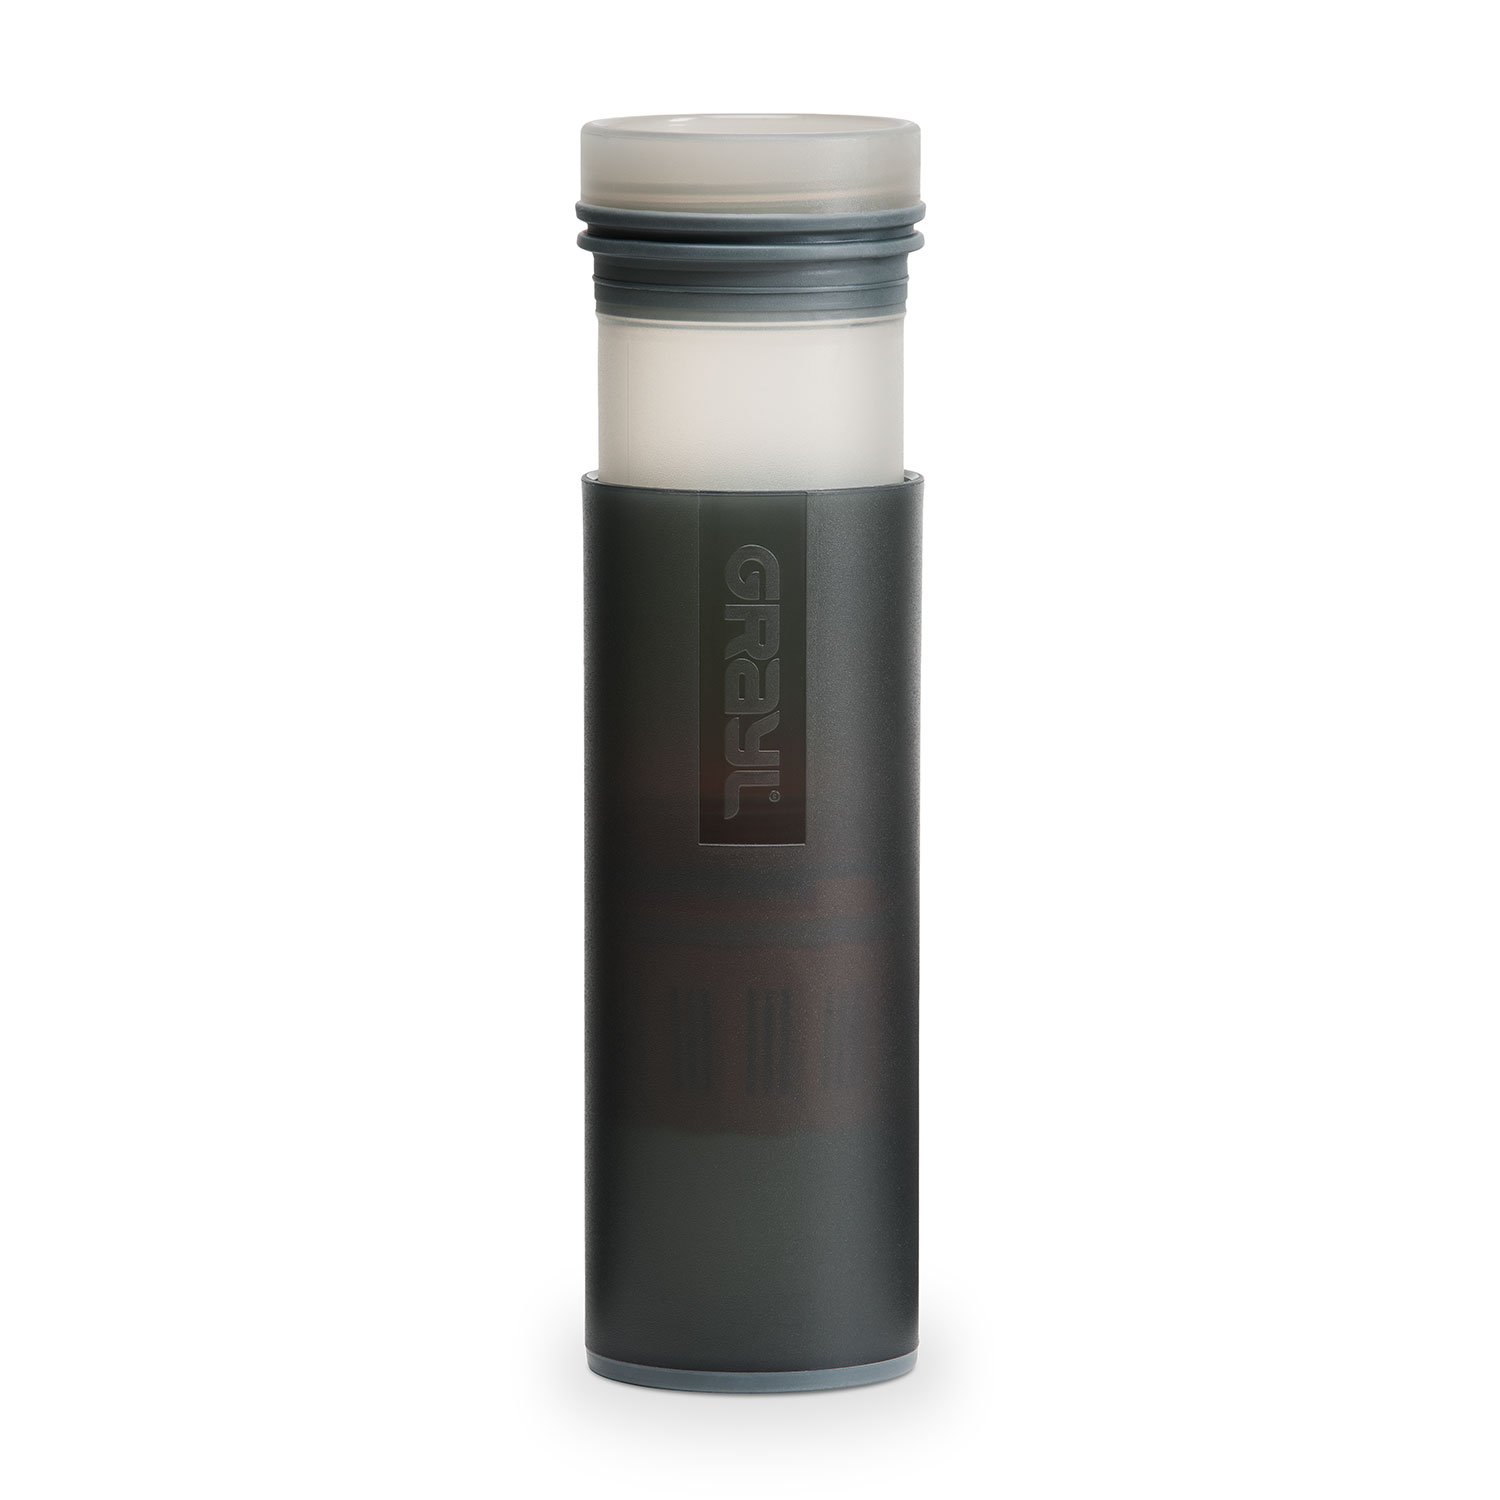 fd78dddaef Amazon.com : GRAYL Ultralight Water Purifier [+ Filter] Bottle (Black) :  Sports & Outdoors